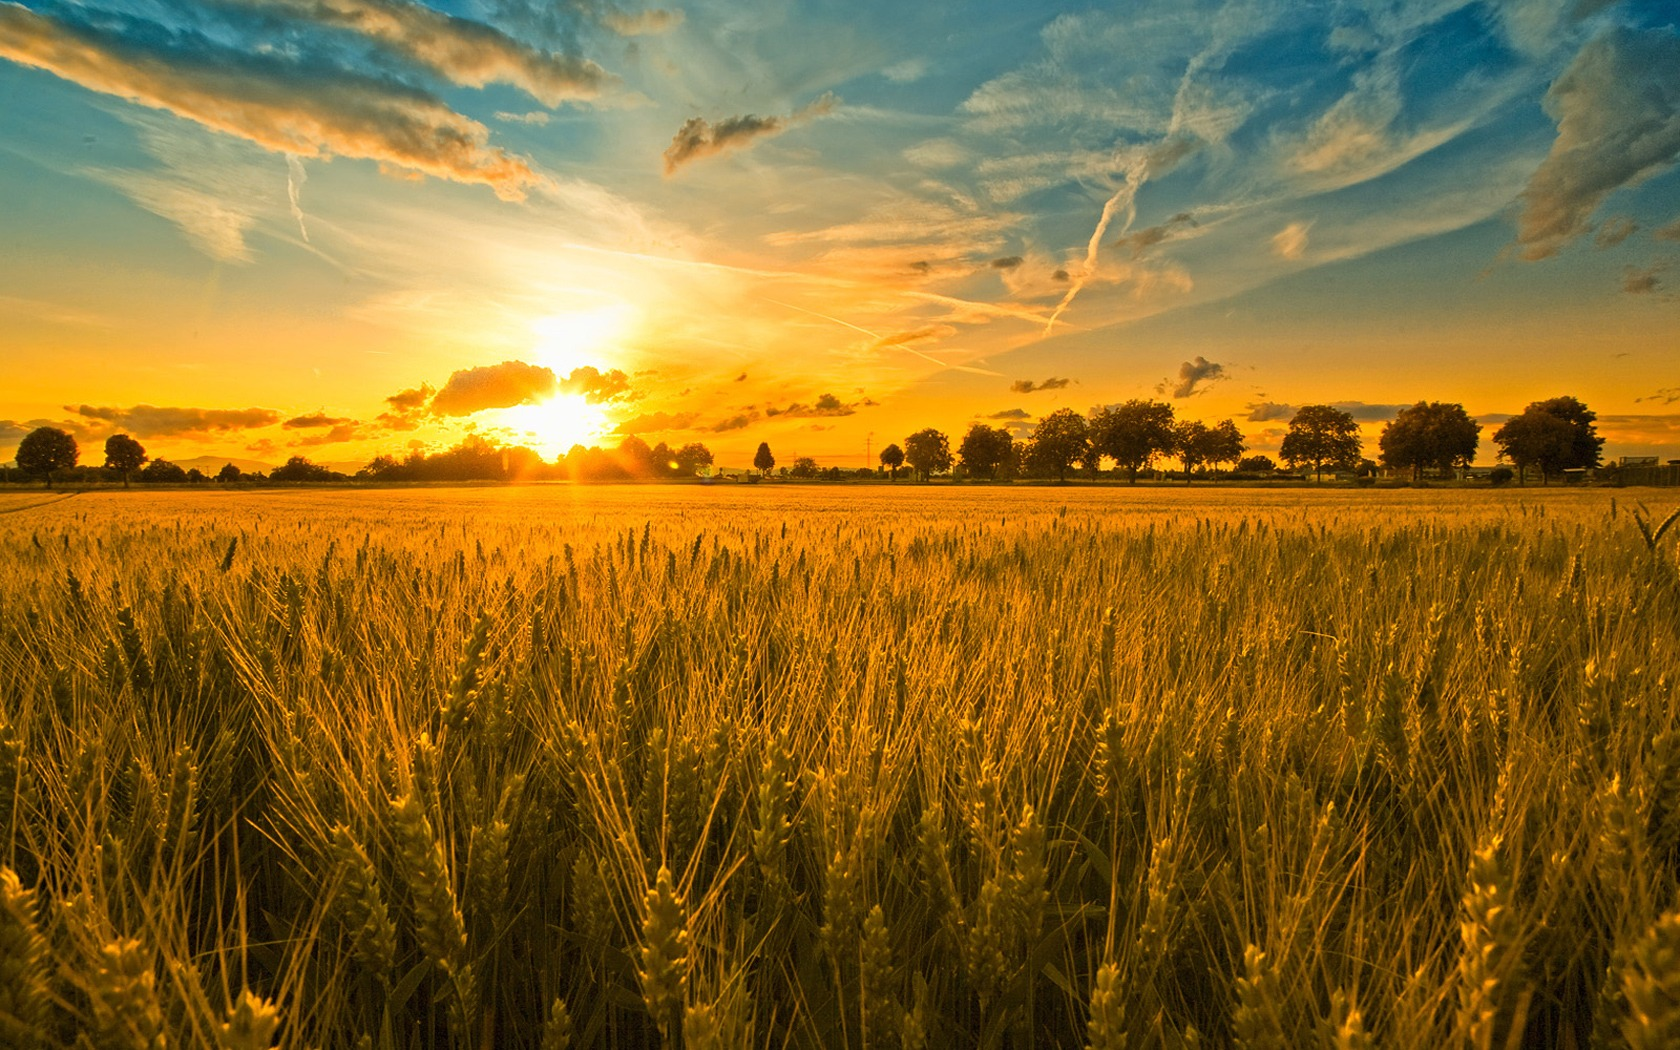 http://www.trinitycanrc.org/wp-content/uploads/2015/08/wheat_field_and_the_rising_sun_1347307083.jpg